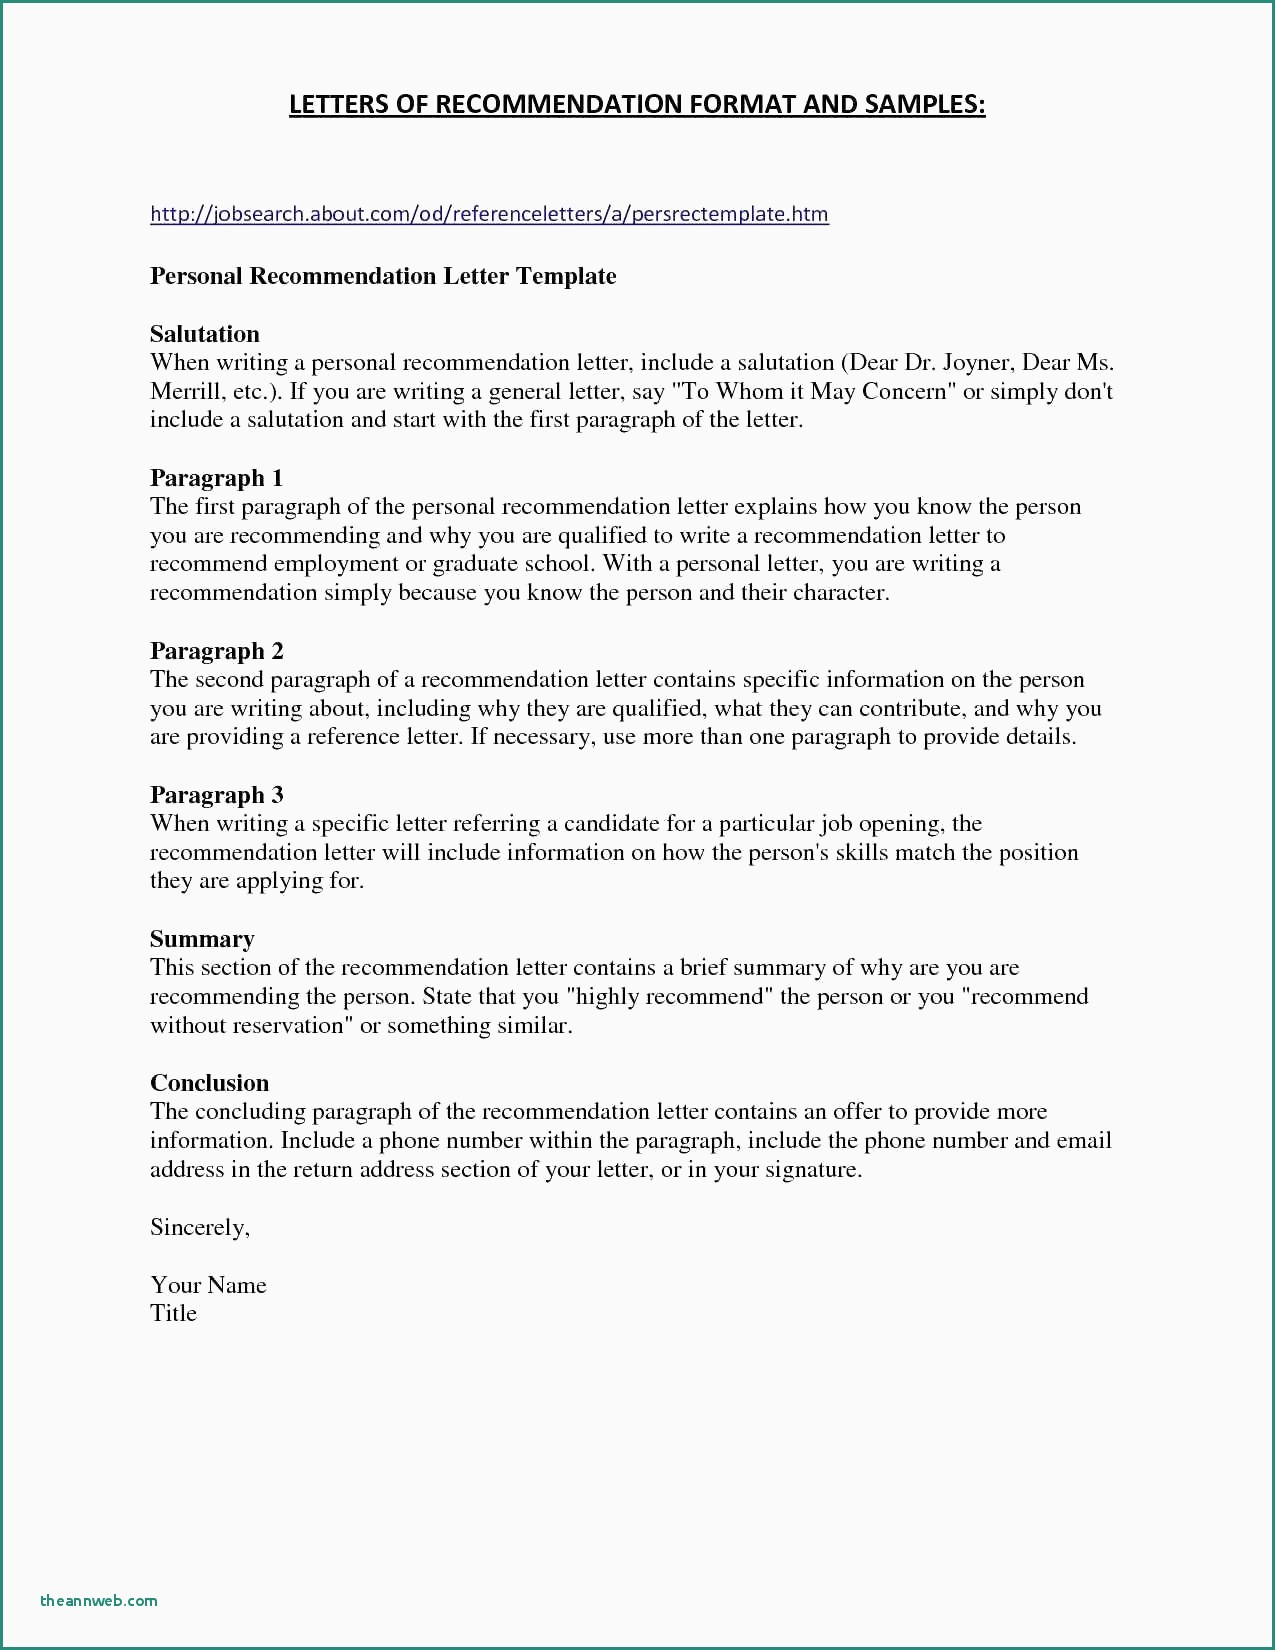 Free Dynamic Resume Templates - Writing A Professional Cover Letter Cover Letters for Resumes Free